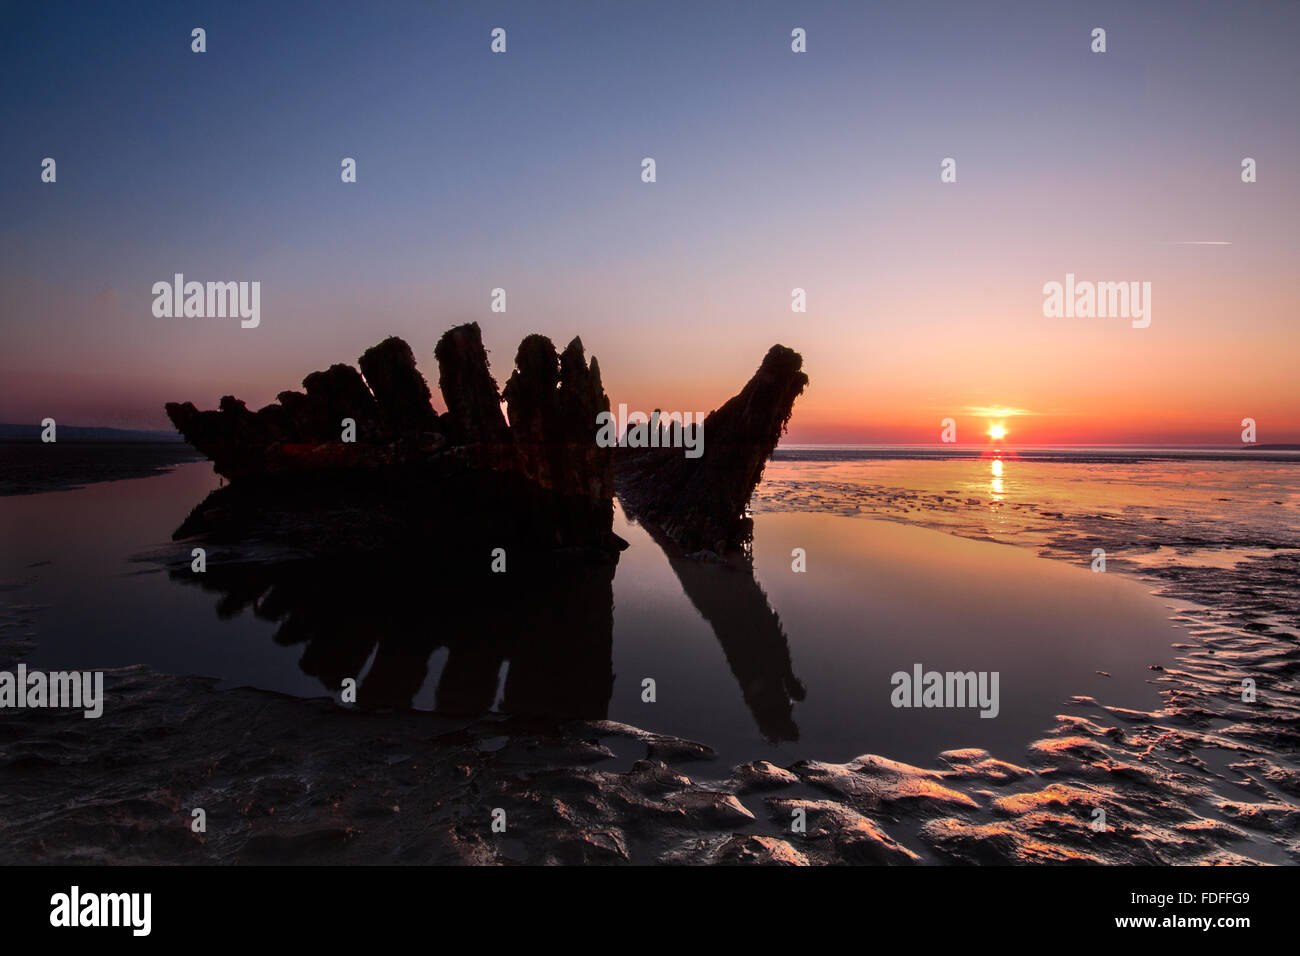 the-wreck-of-the-ss-nornen-at-sunset-on-